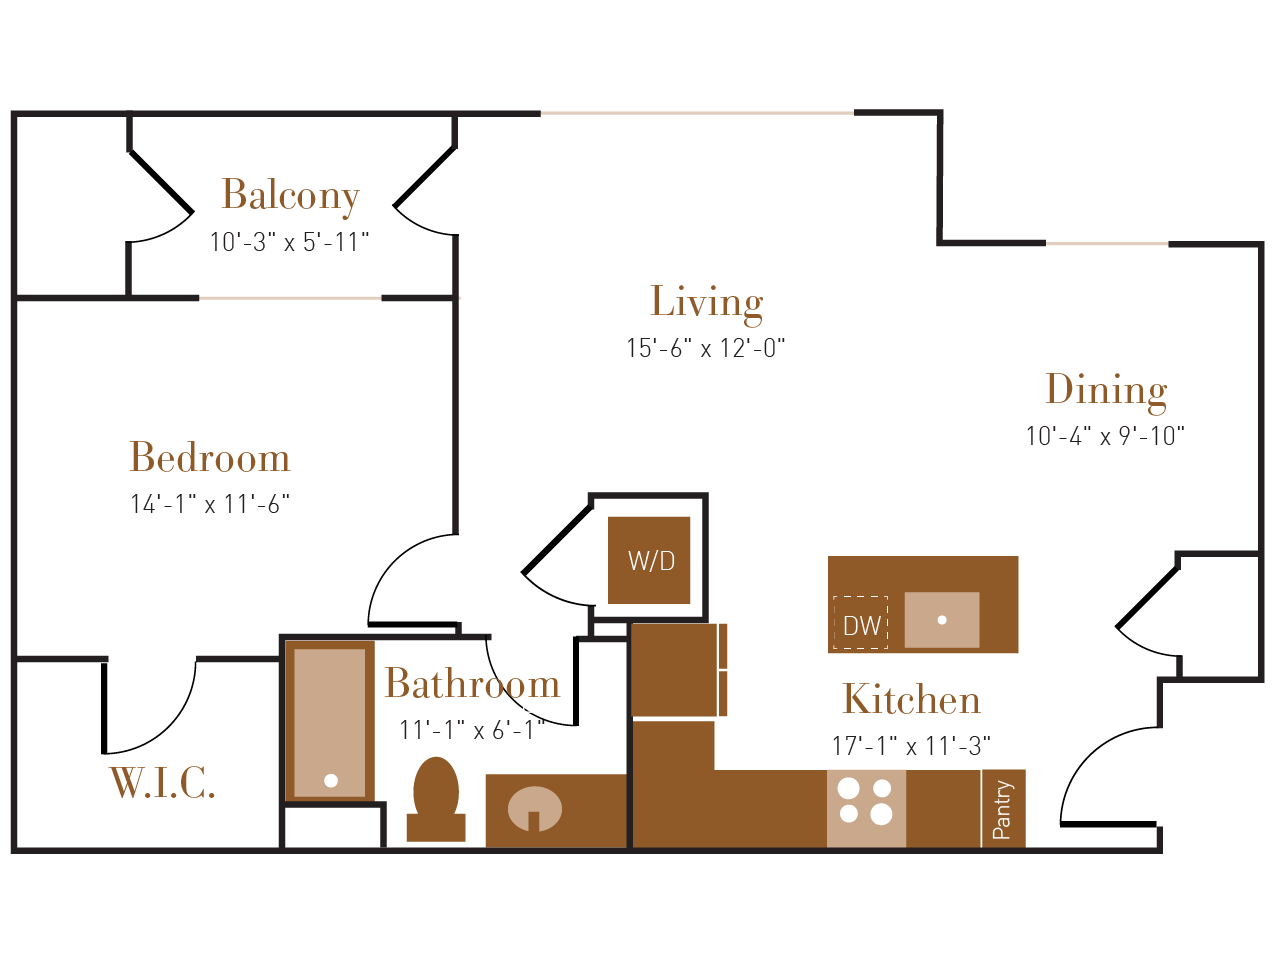 A Five floor plan diagram. One bedroom, one bathroom, an open kitchen dining and living area, a balcony, and a washer dryer.